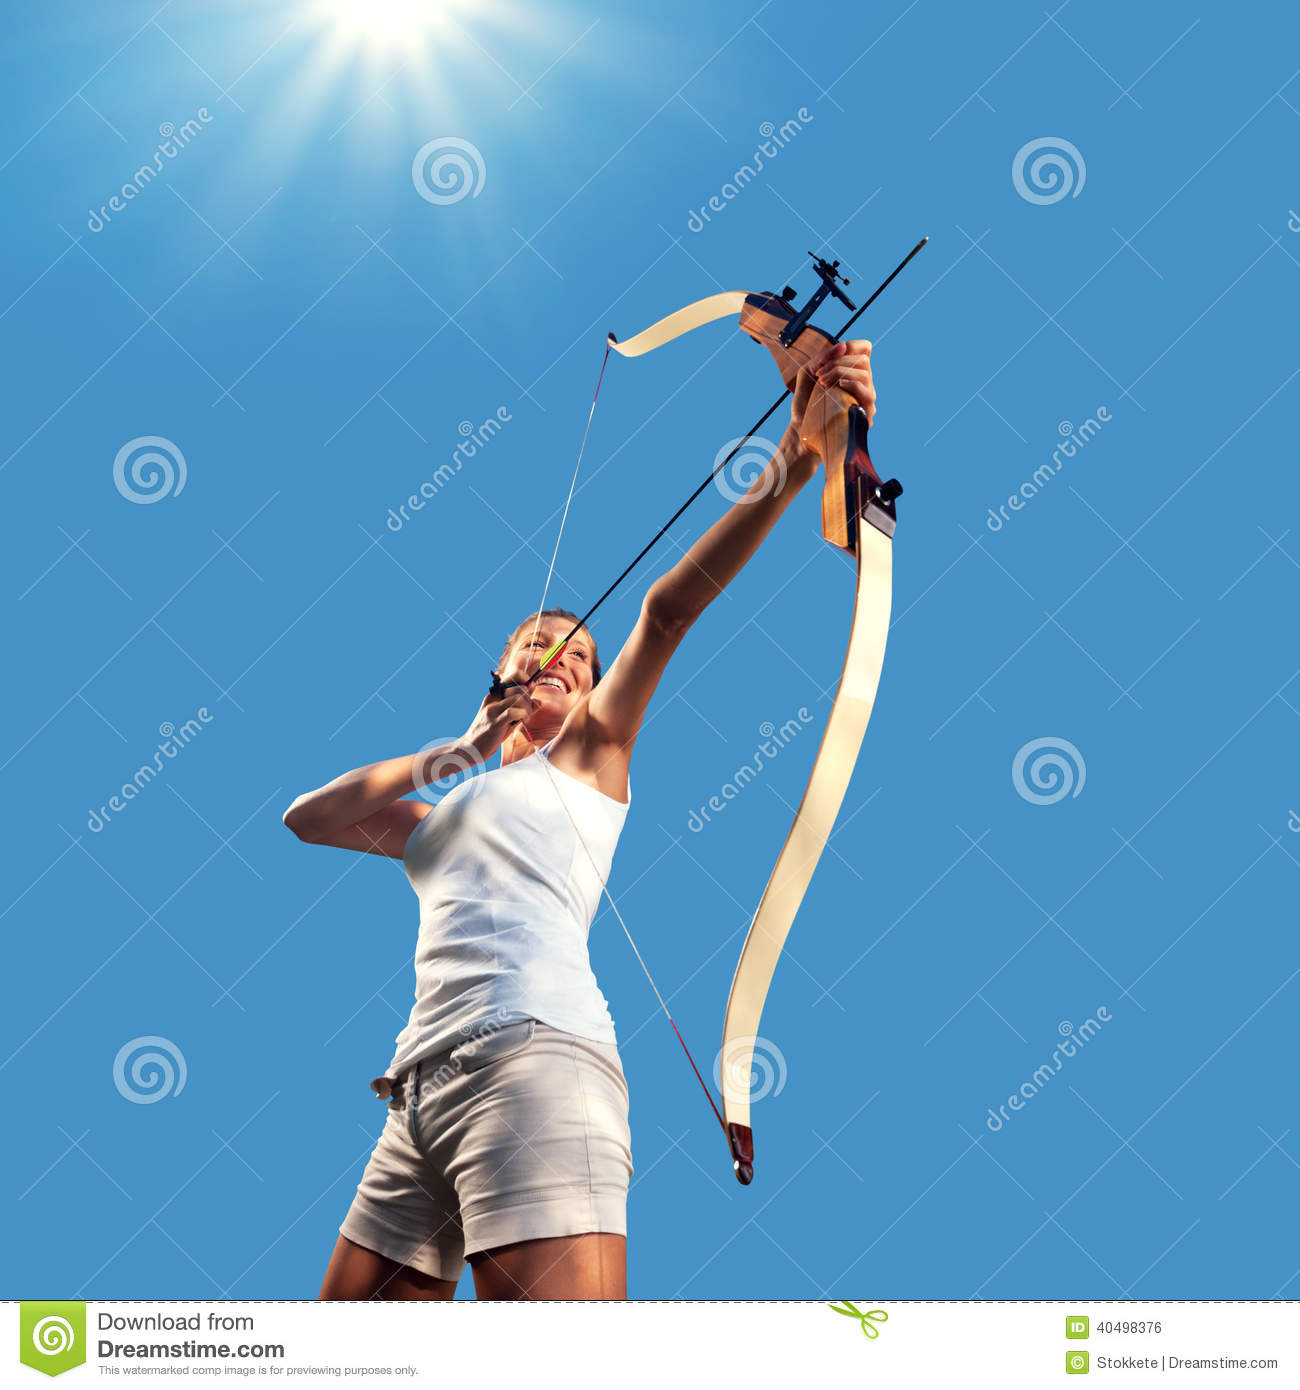 Woman practicing with bow and arrow